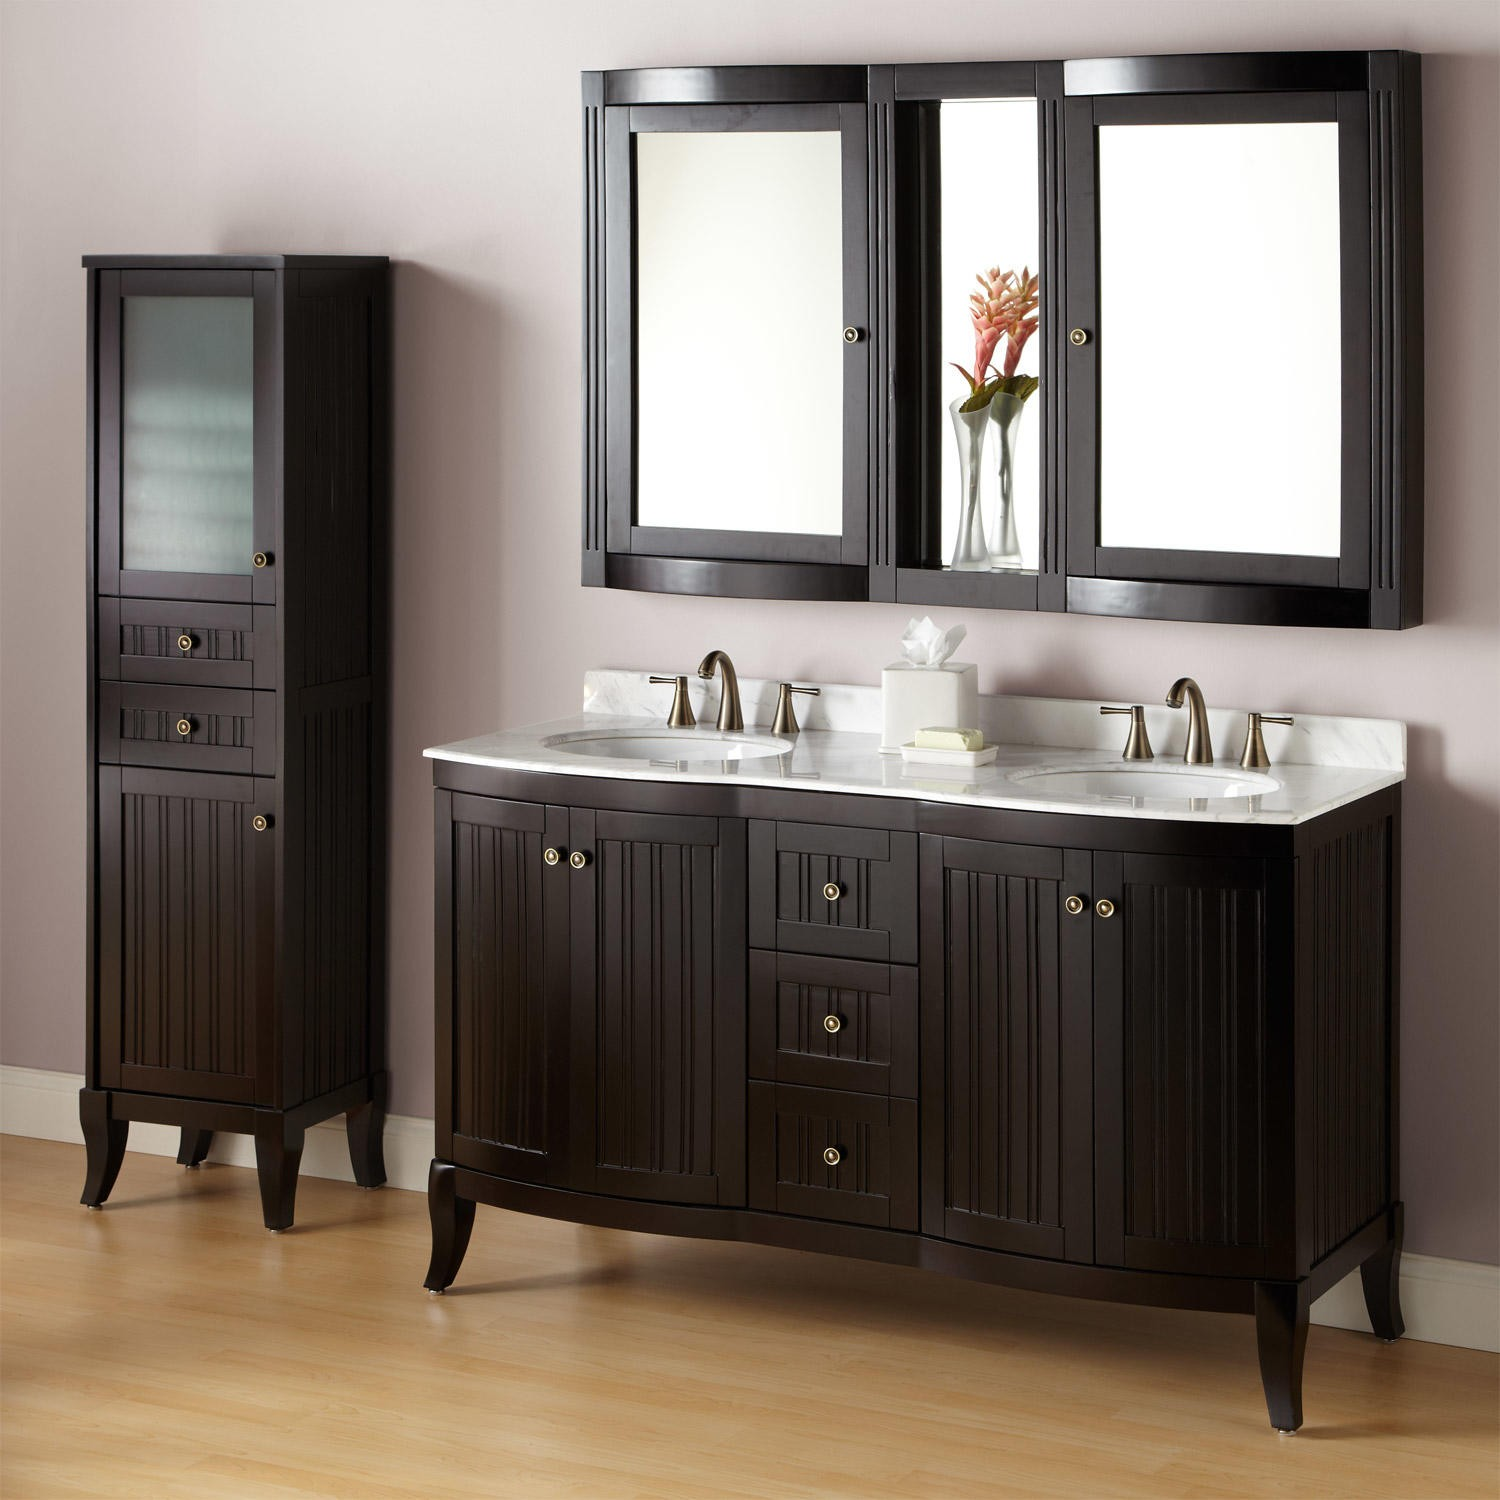 Bathroom vanities dallas tx - Ronbow Bathroom Vanity Ronbow Bathroom Sinks Ronbow Vanity Tops